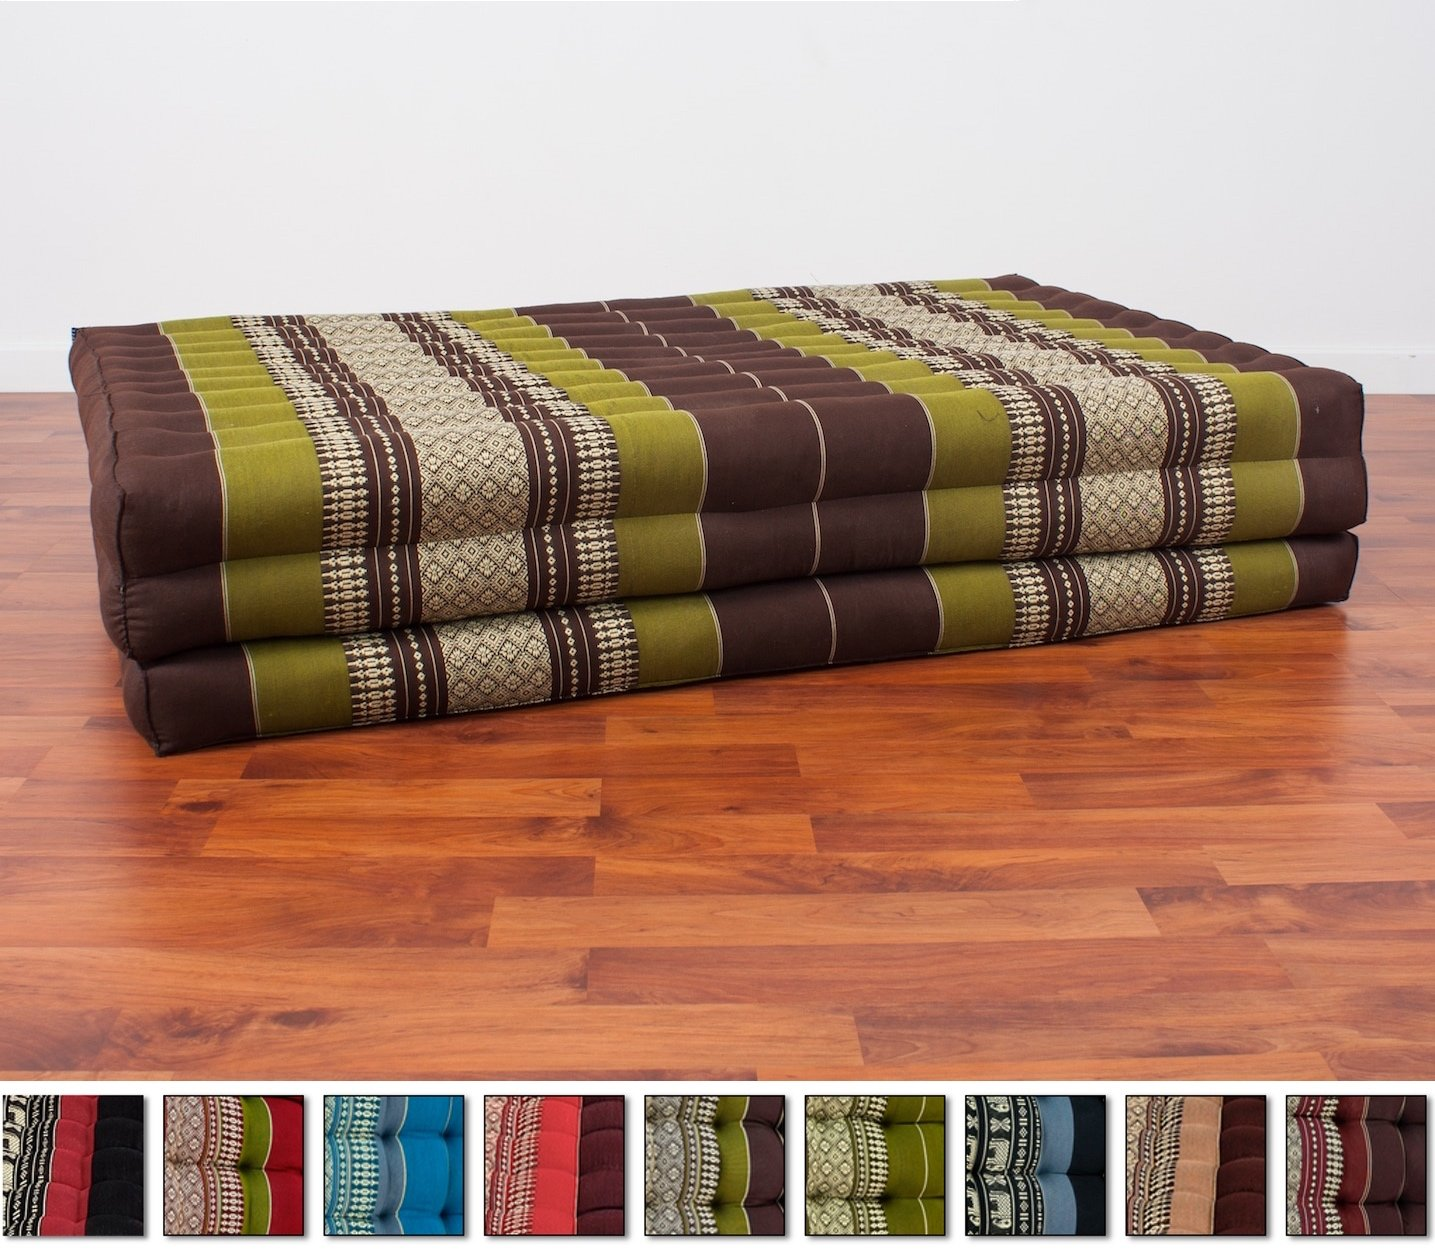 Leewadee Thai Massage Mat XL, 82x46x3 inches, Kapok Fabric, Brown Green, Premium Double Stitched by Leewadee